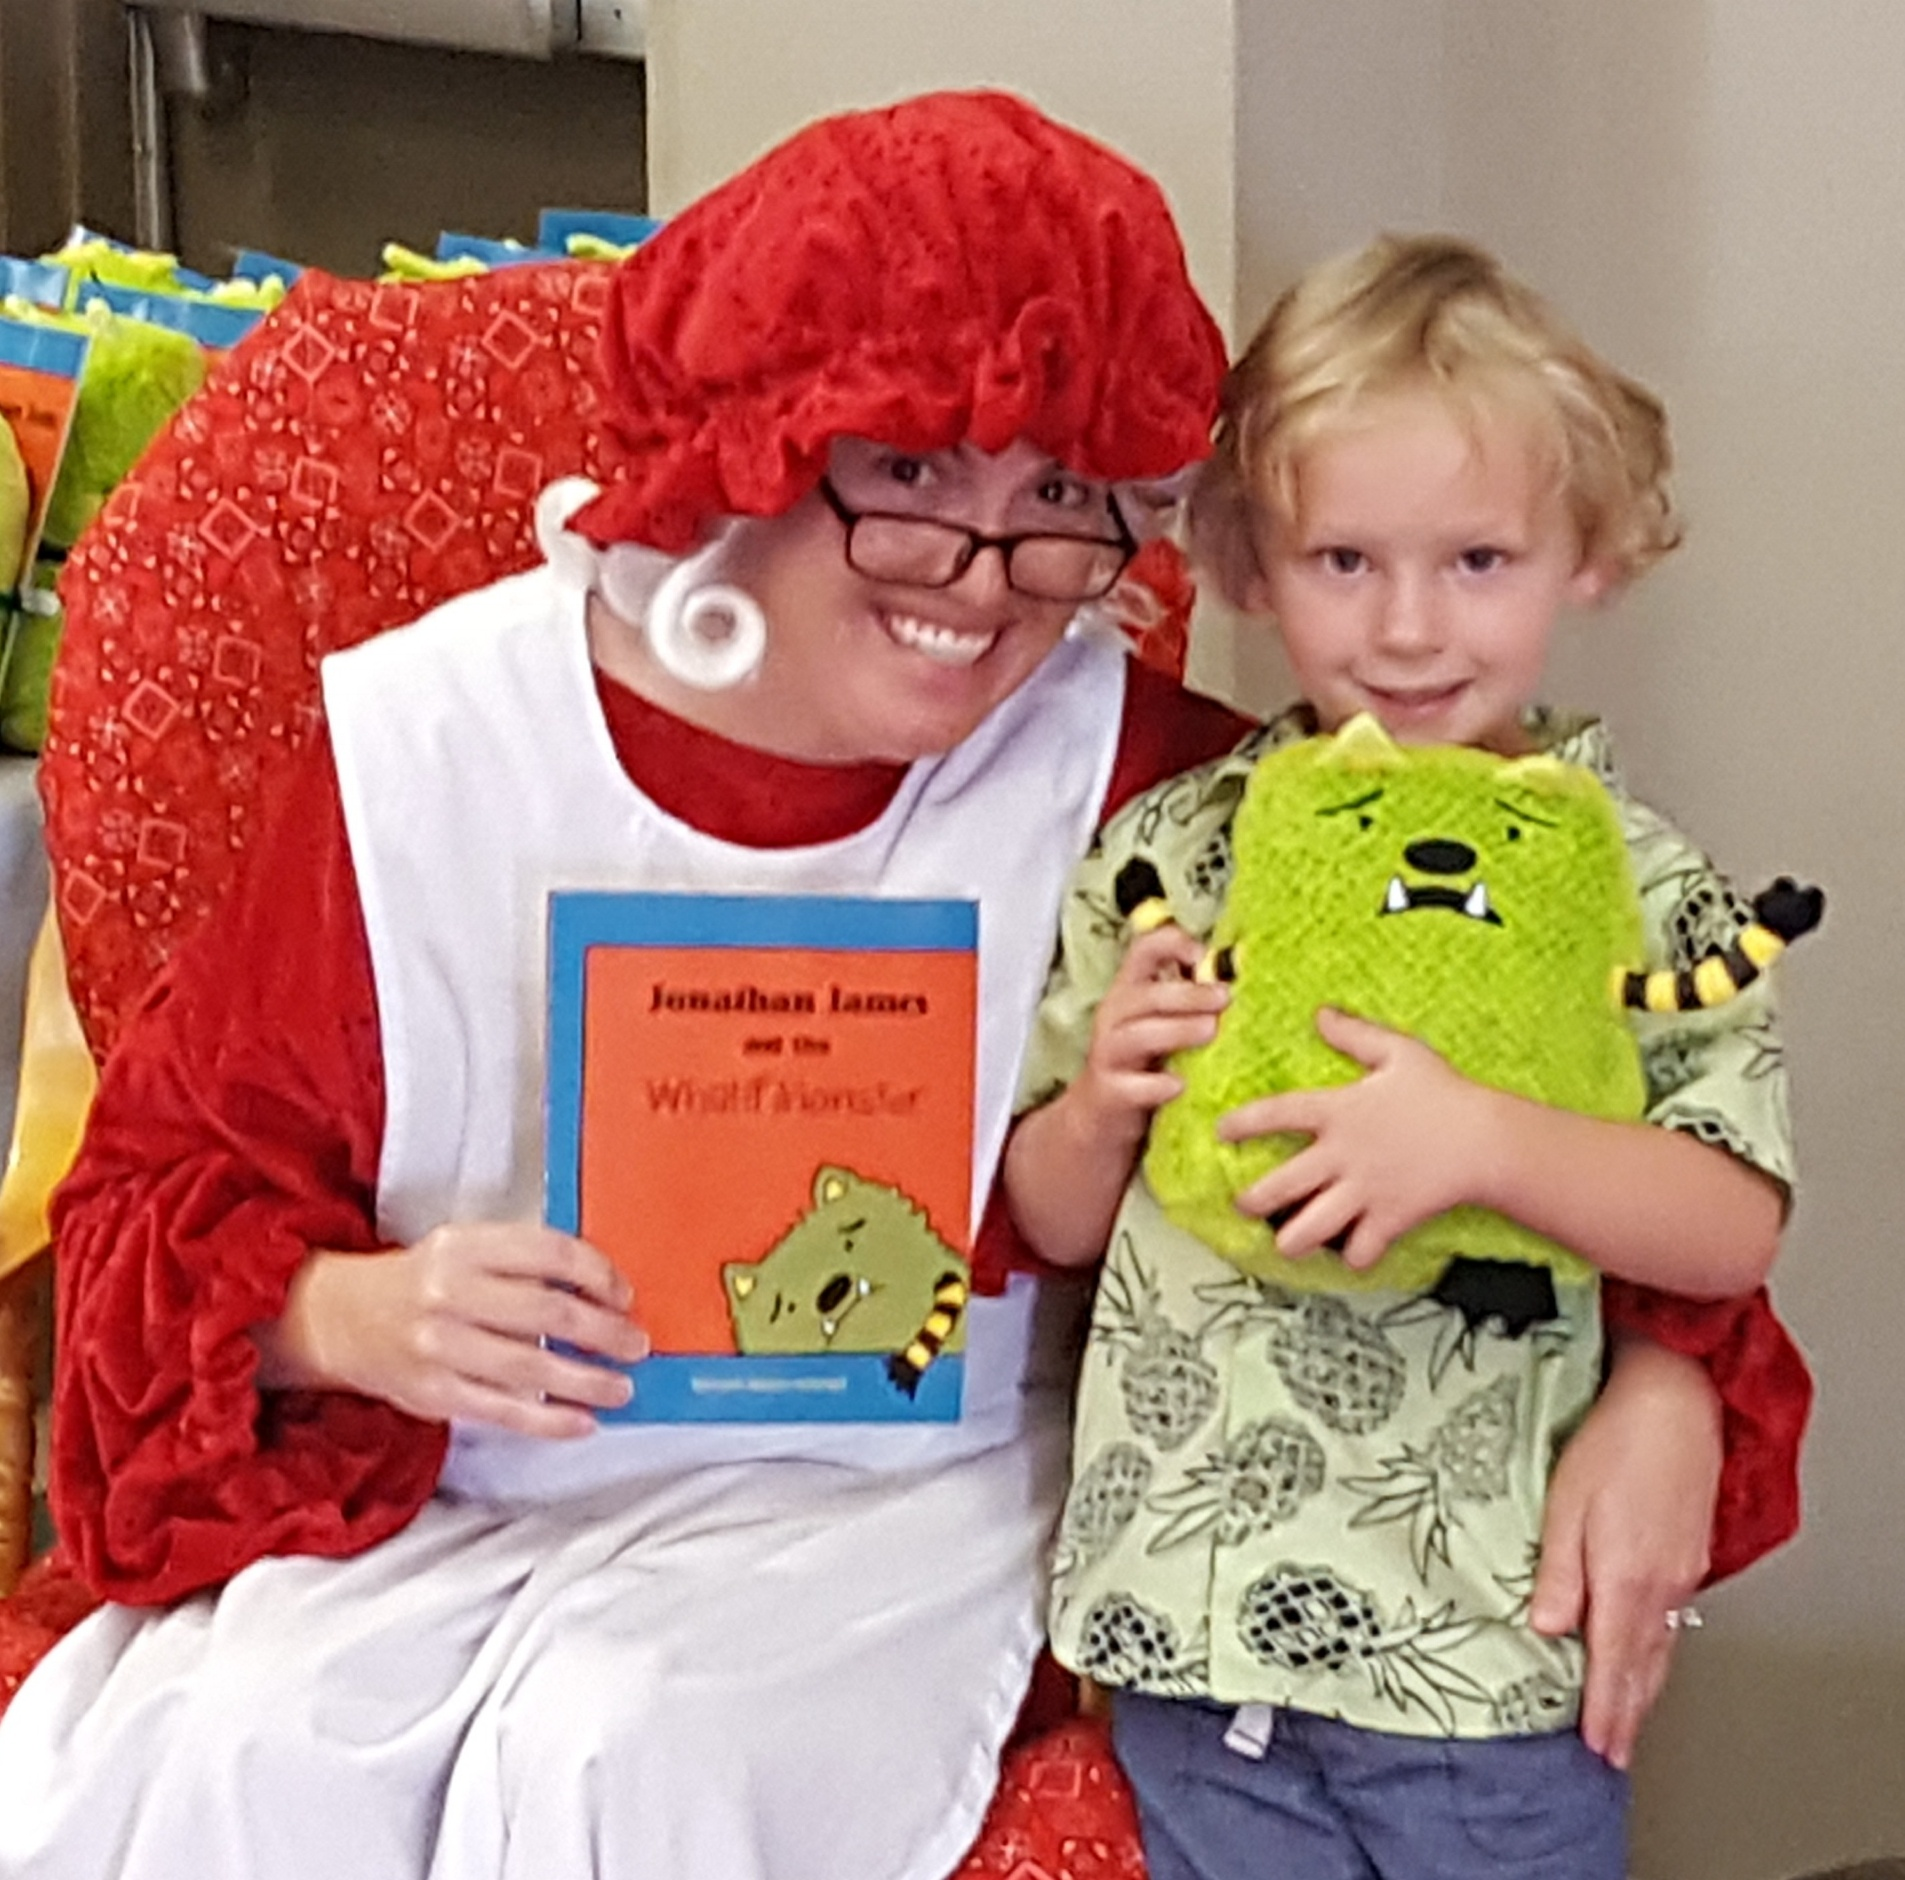 Mrs._Clause_with_book_and_plush-941211-edited.jpg